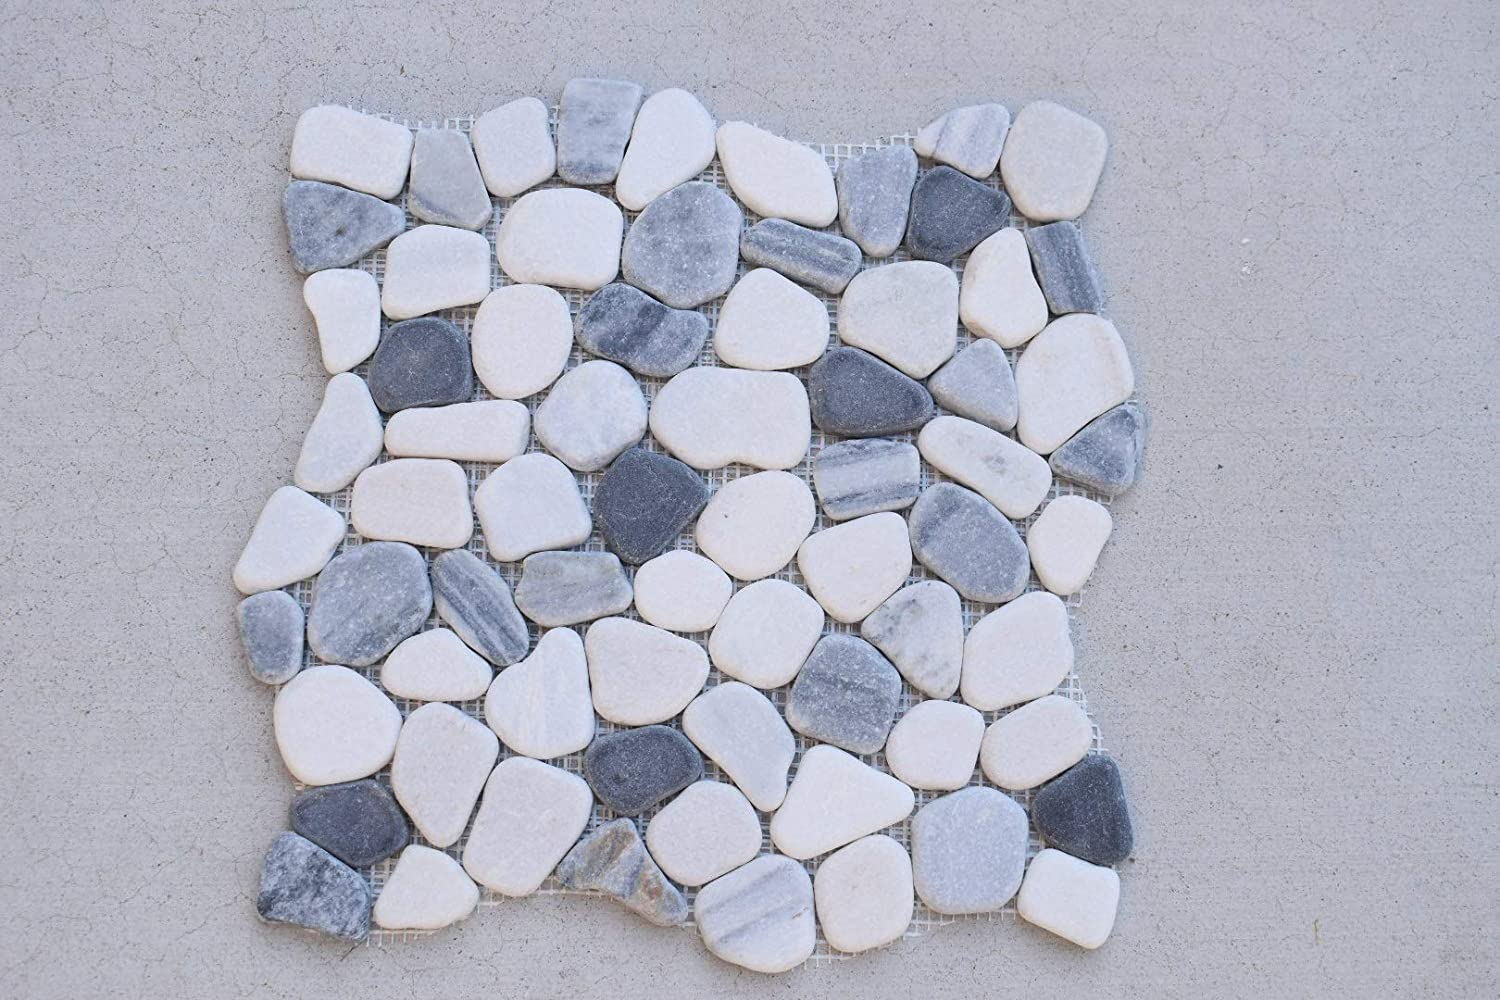 Interlocking Pebble Floor Tiles Indoor and Outdoor Use and Patio Flooring Kitchen Bathroom 5-Pack Natural Jade Stones Quick and Easy Grout Installation